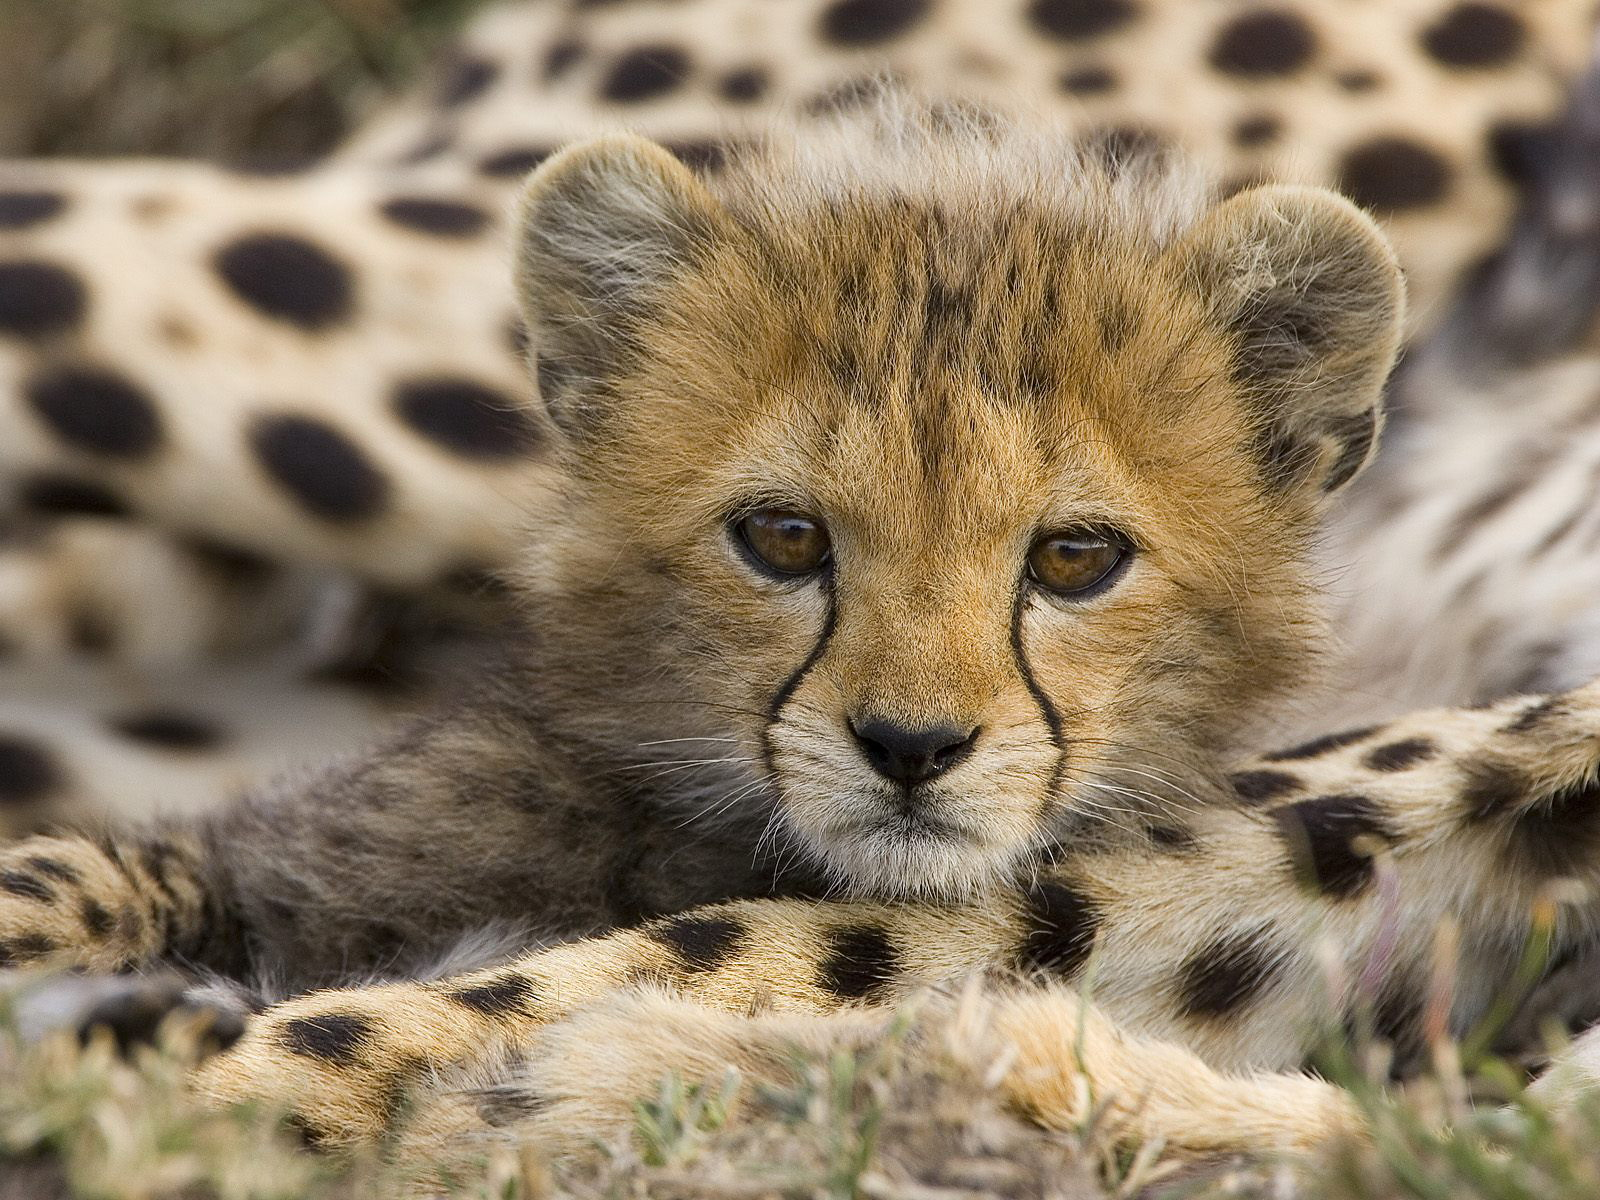 Animal Cubs images Cheetah Cub HD wallpaper and background photos